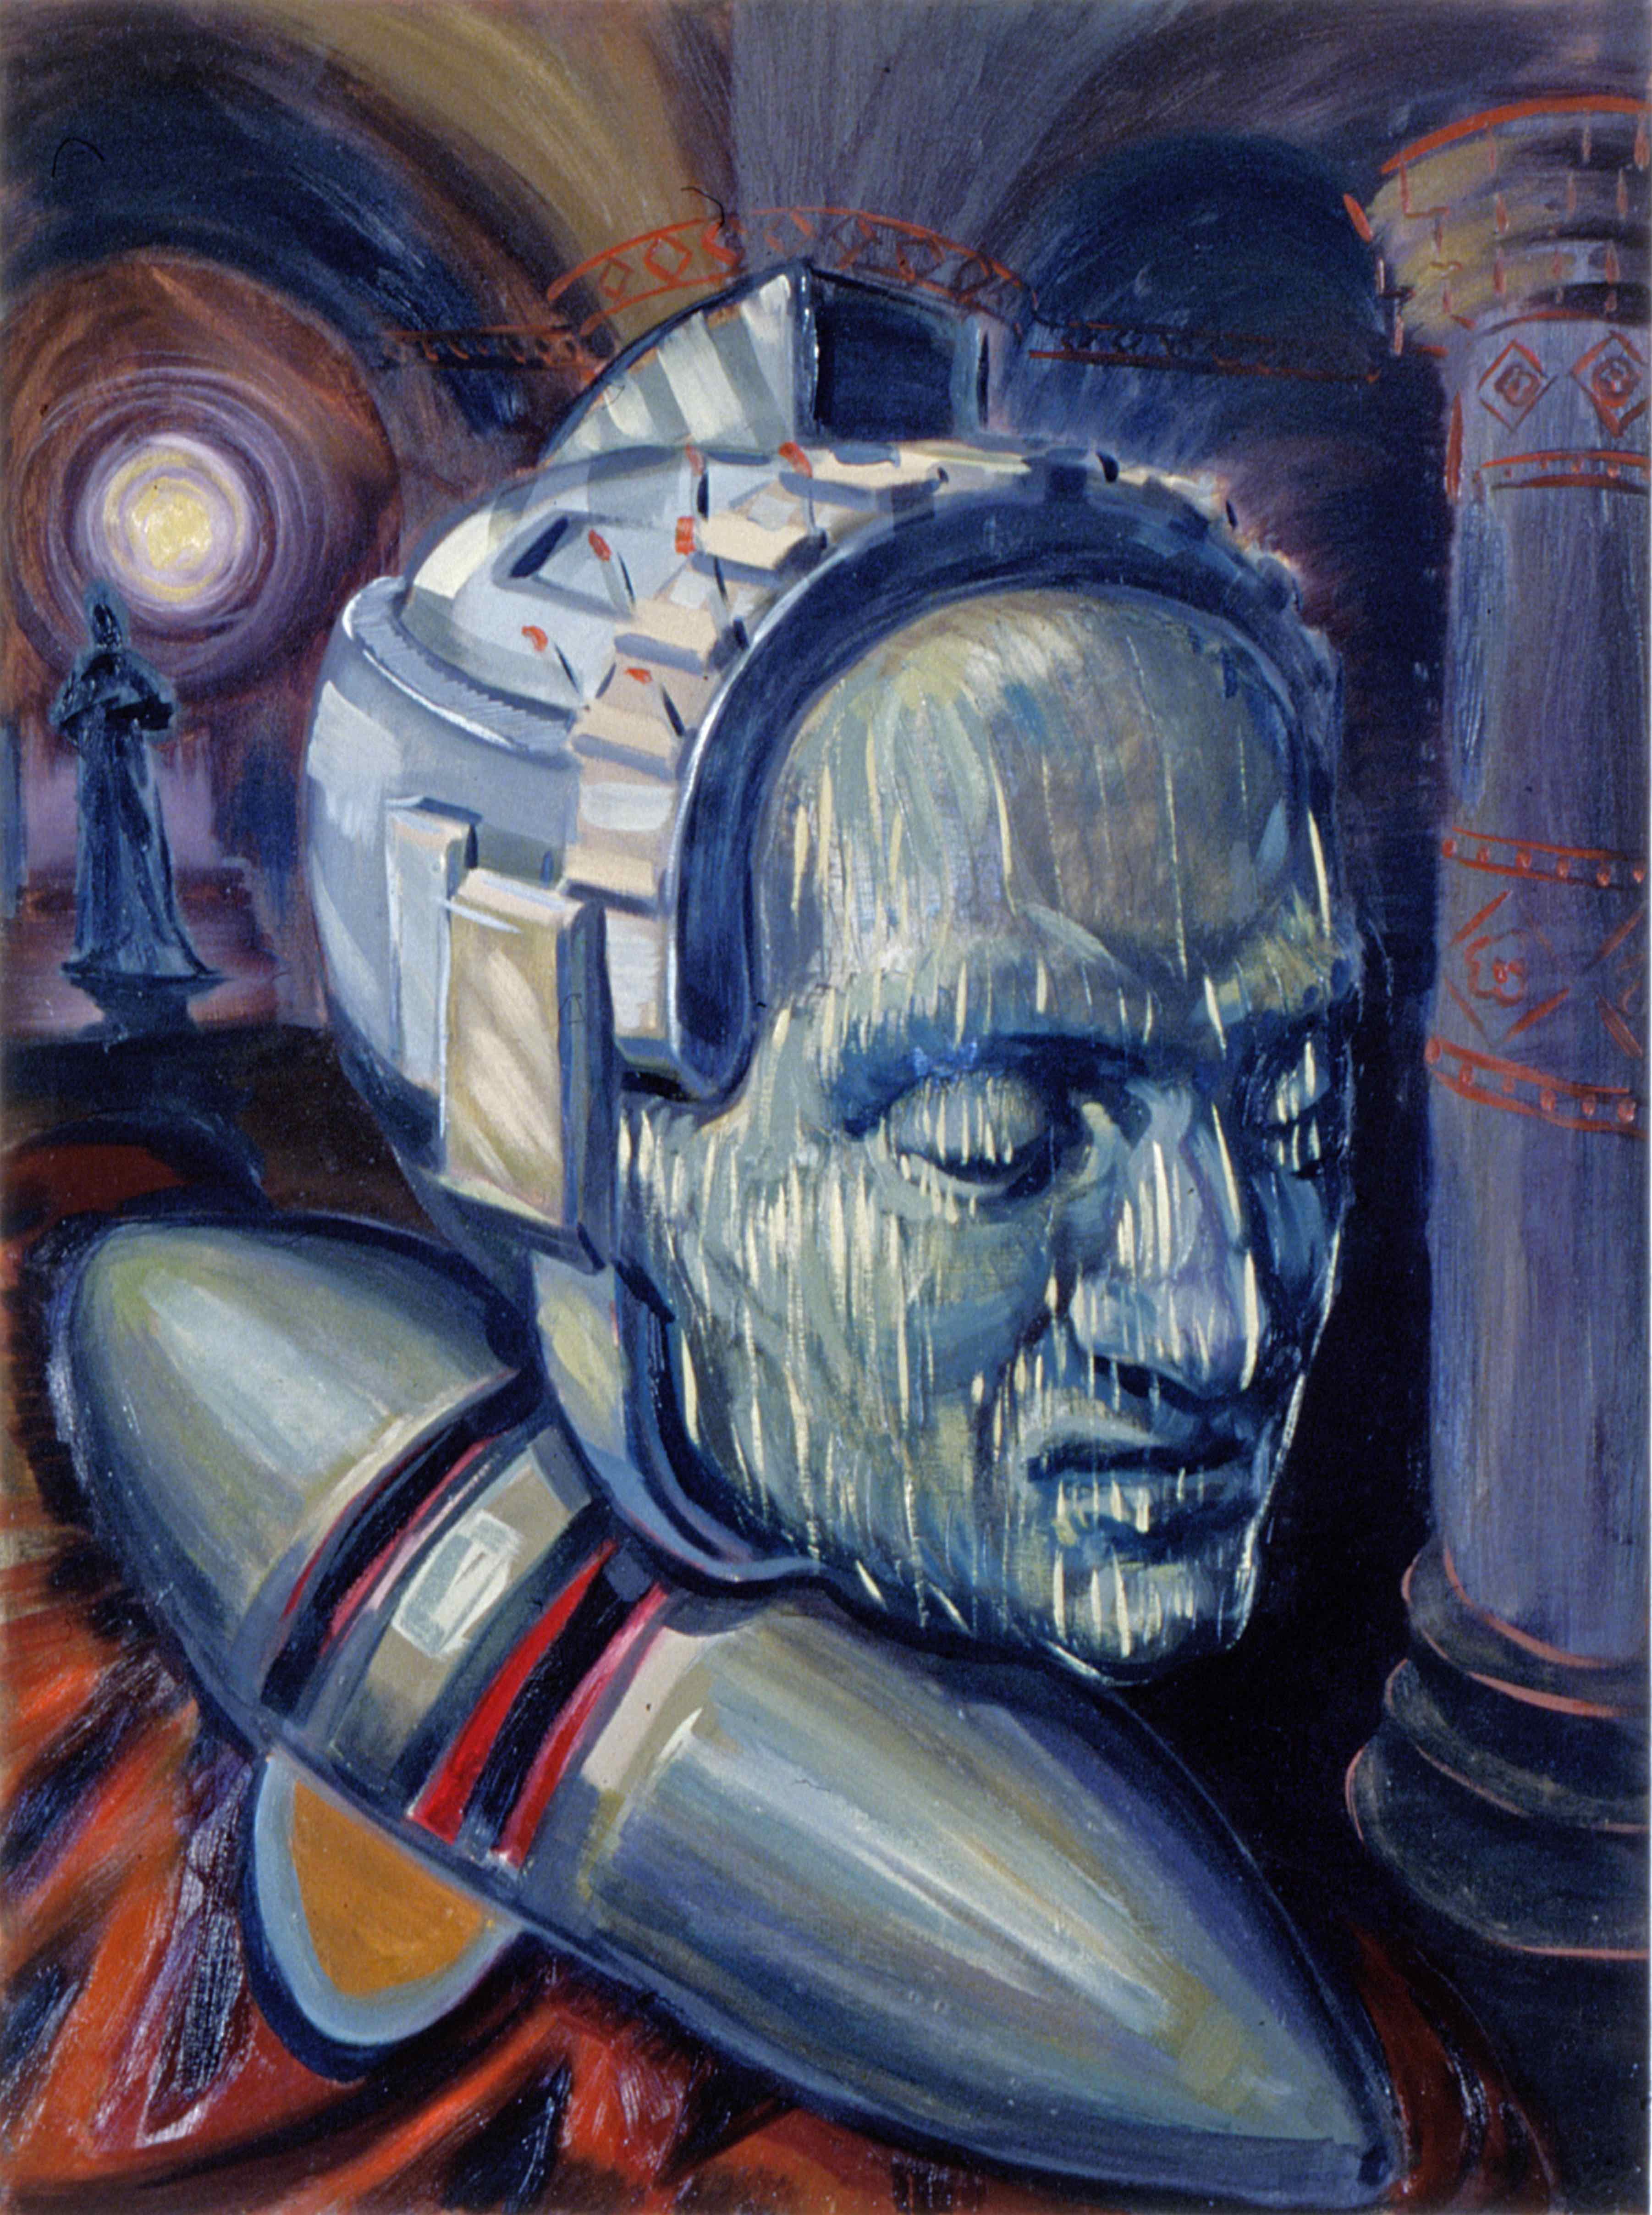 ROBO SAINT, painted by Vince Mancuso in 1992, oil on canvas, 3x4 feet. Private collection